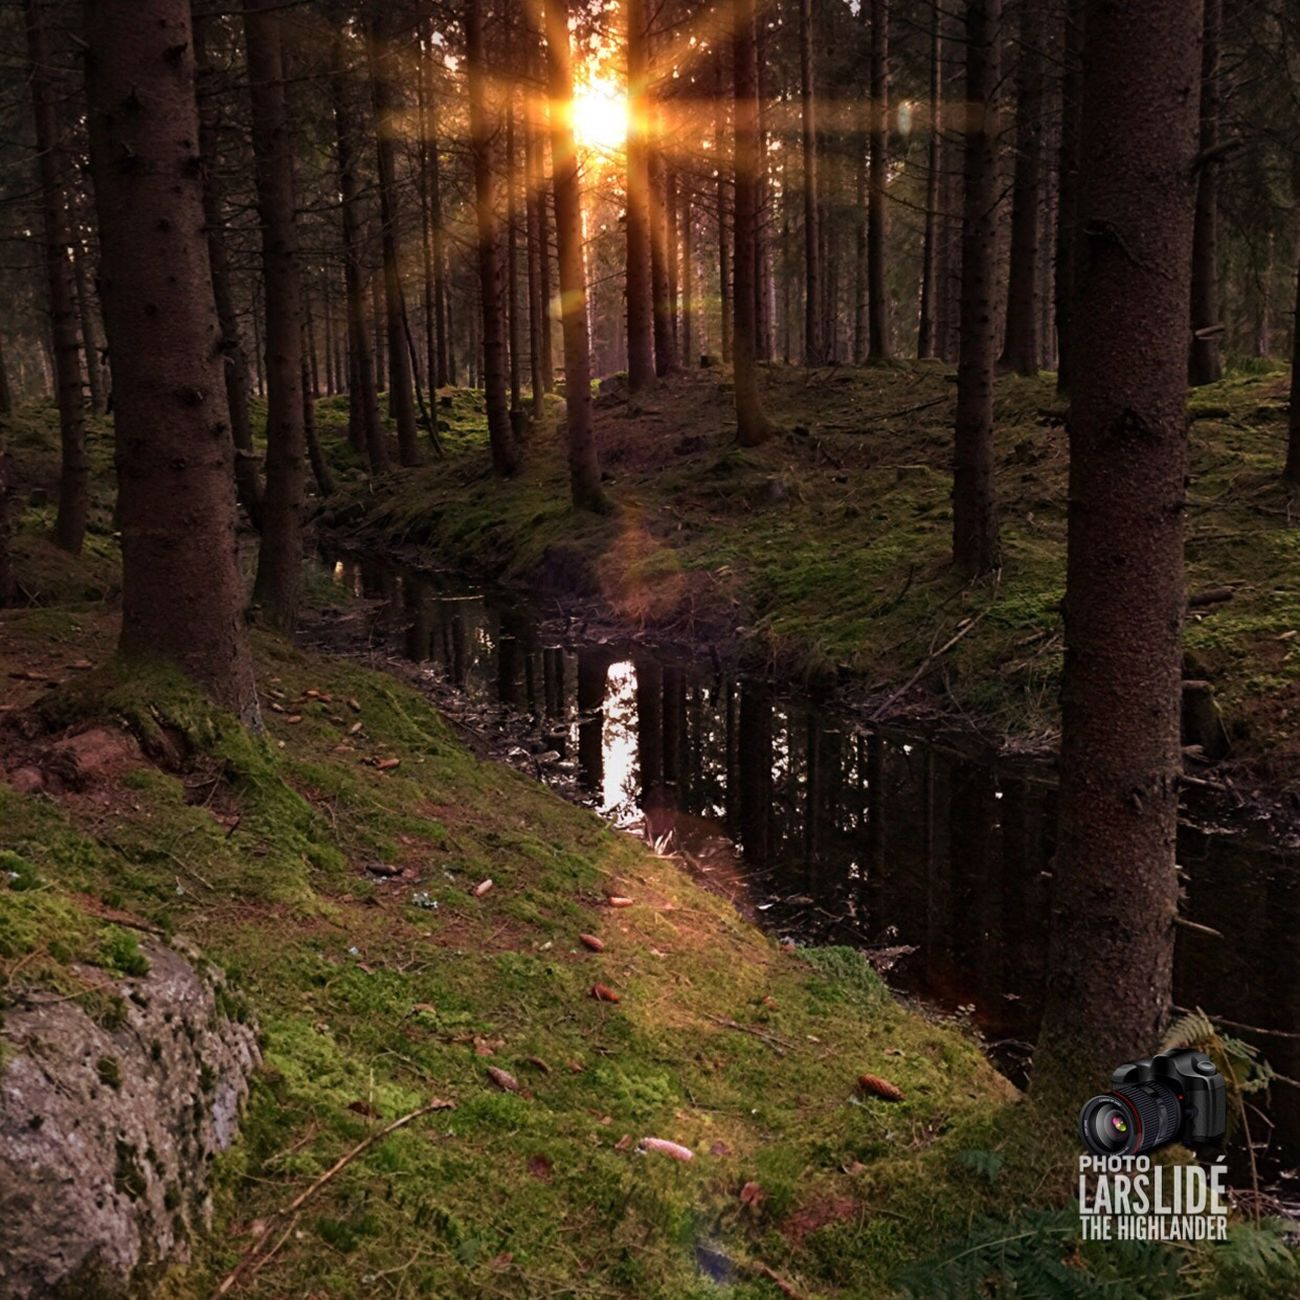 Forest Tree Landscape Nature Sunset Beauty In Nature No People Outdoors Countryside Taking Photos Winter Wilderness Tree Area WoodLand Cold Temperature